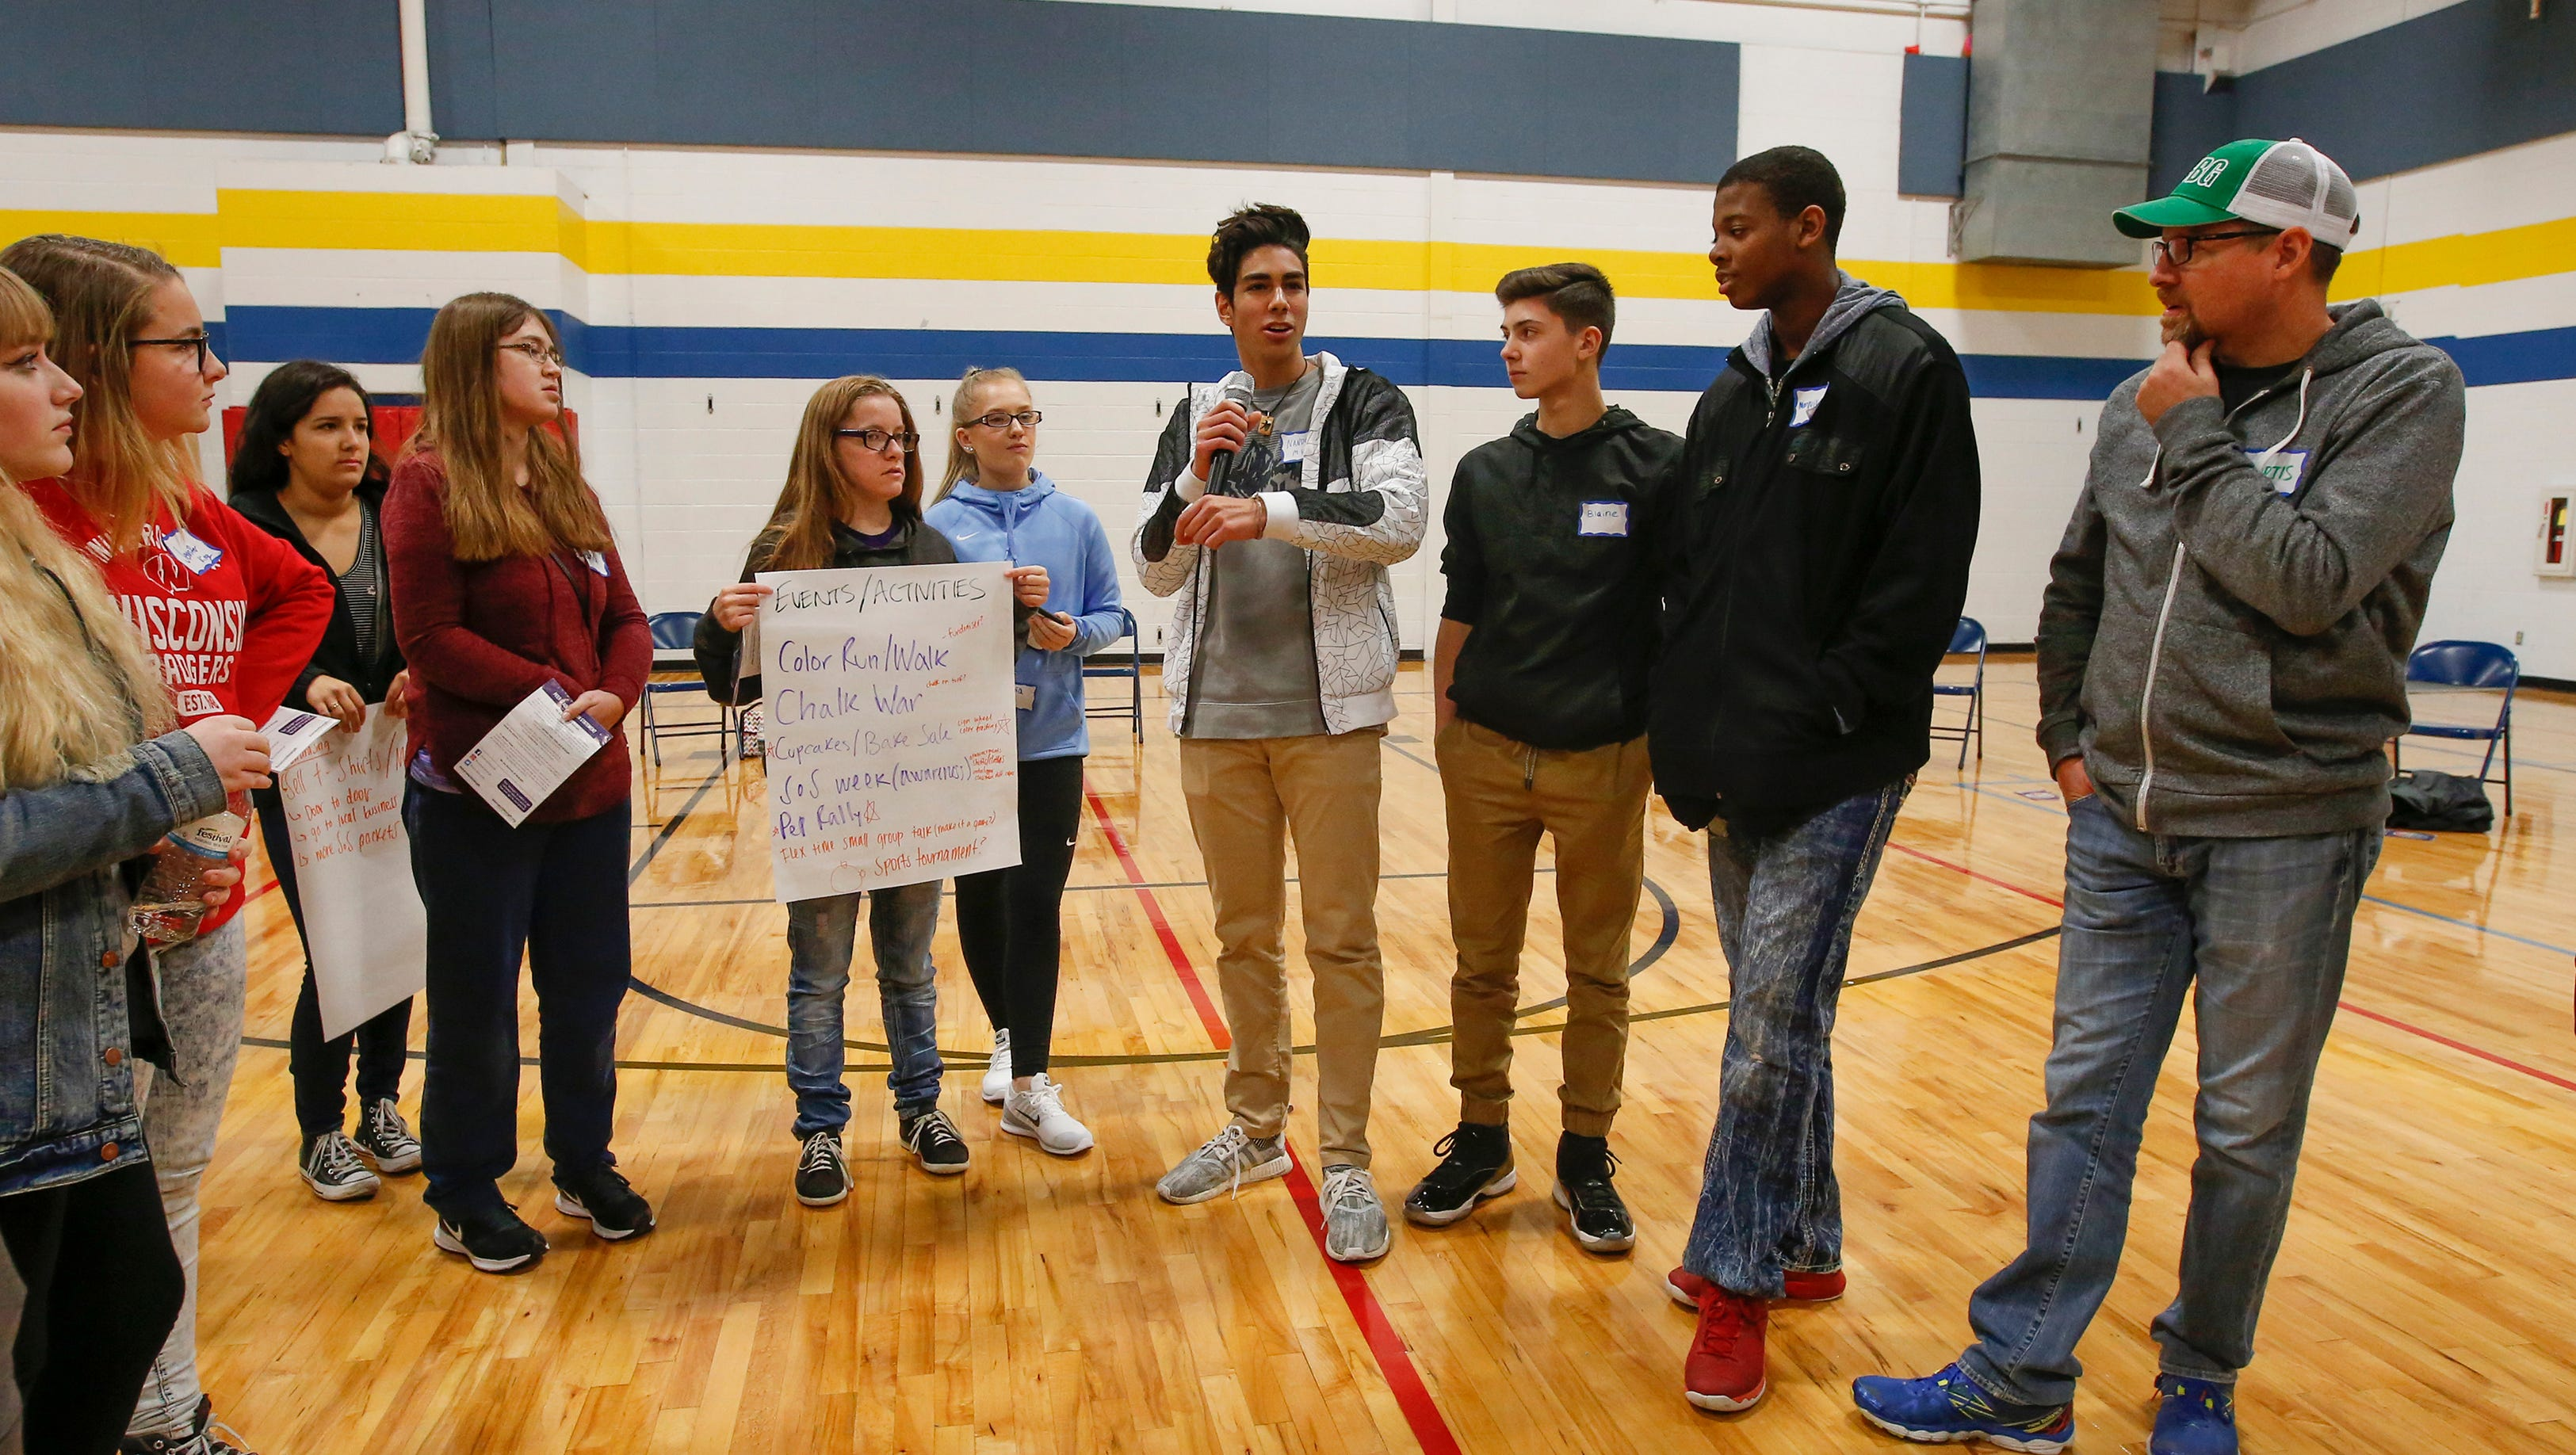 Teens take charge: Student-led programs put Wisconsin teens on front lines for suicide prevention